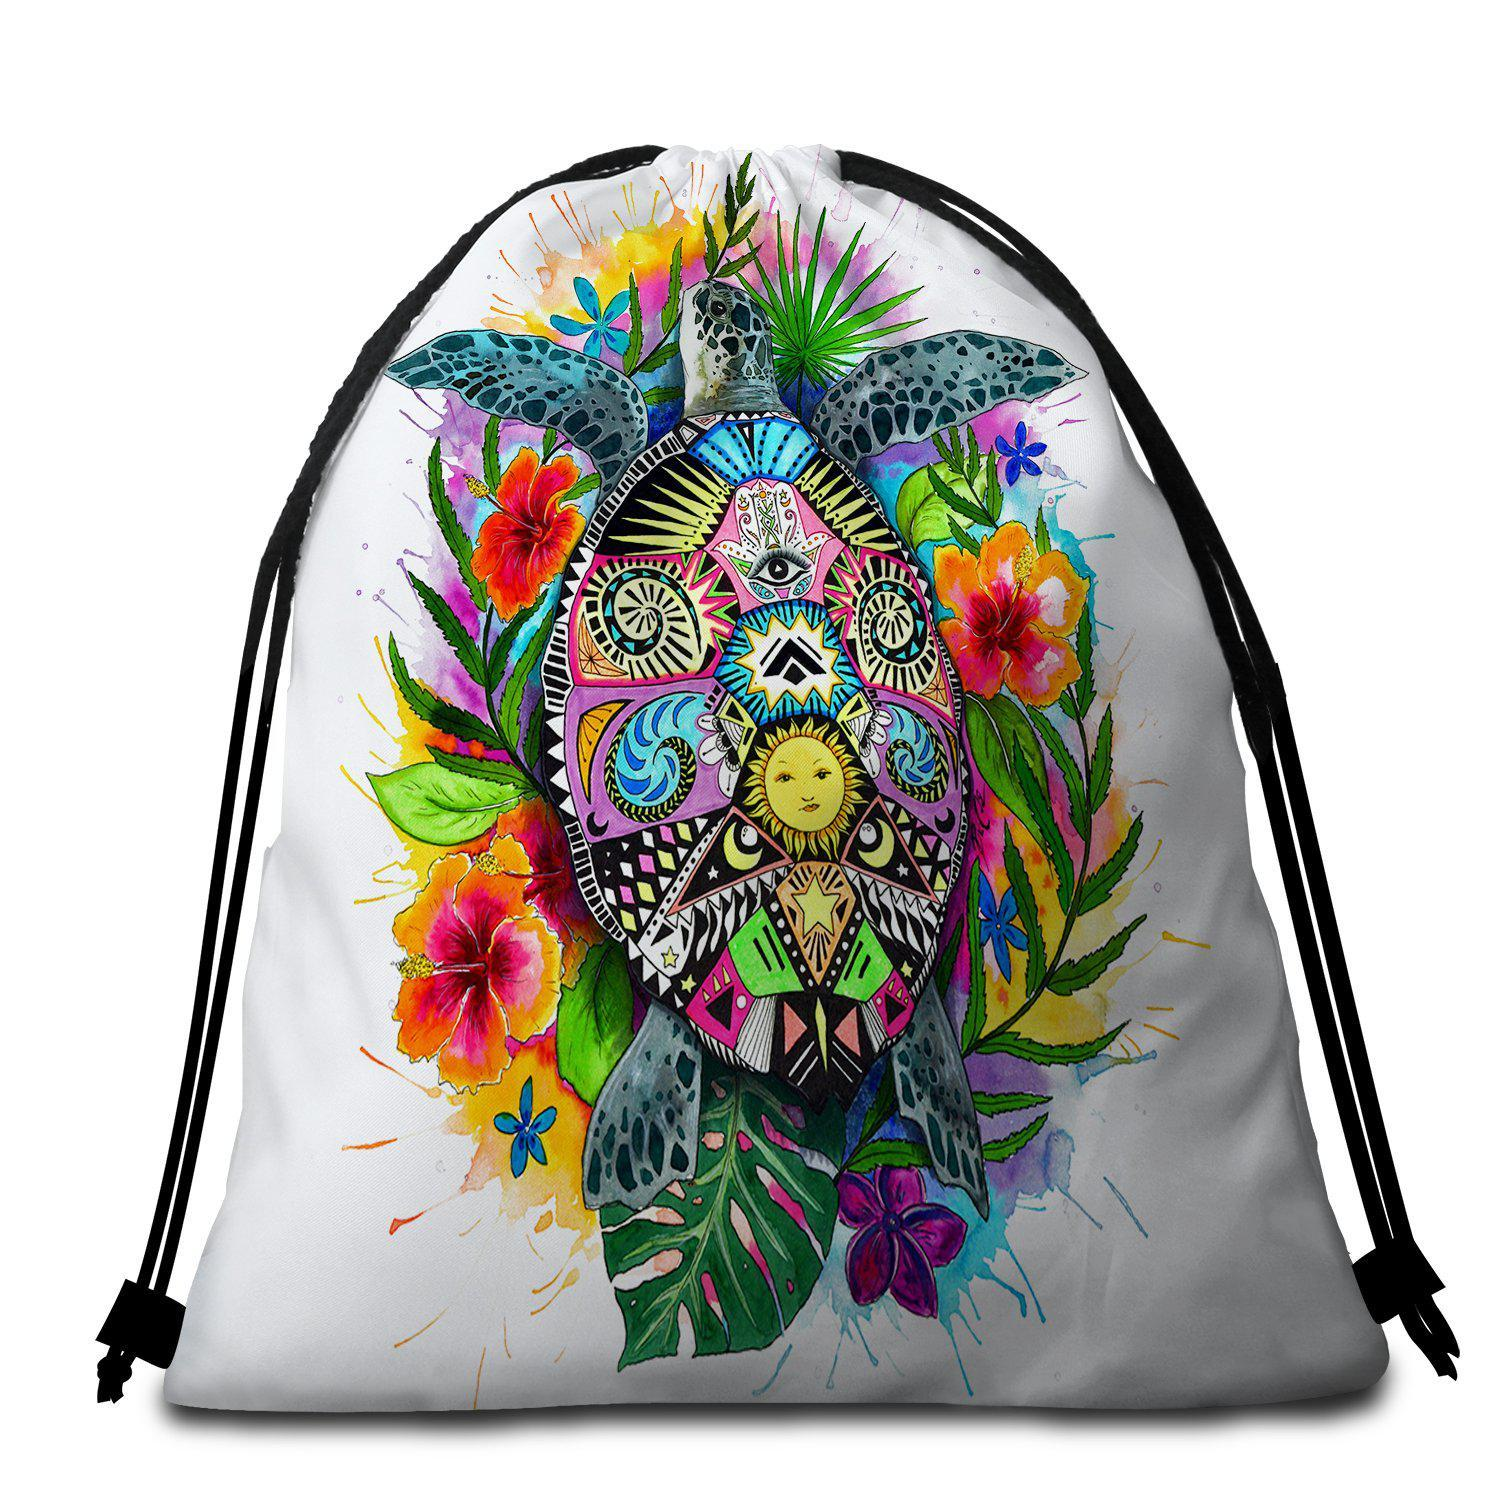 The Original Turtle Mystic Drawstring Bag